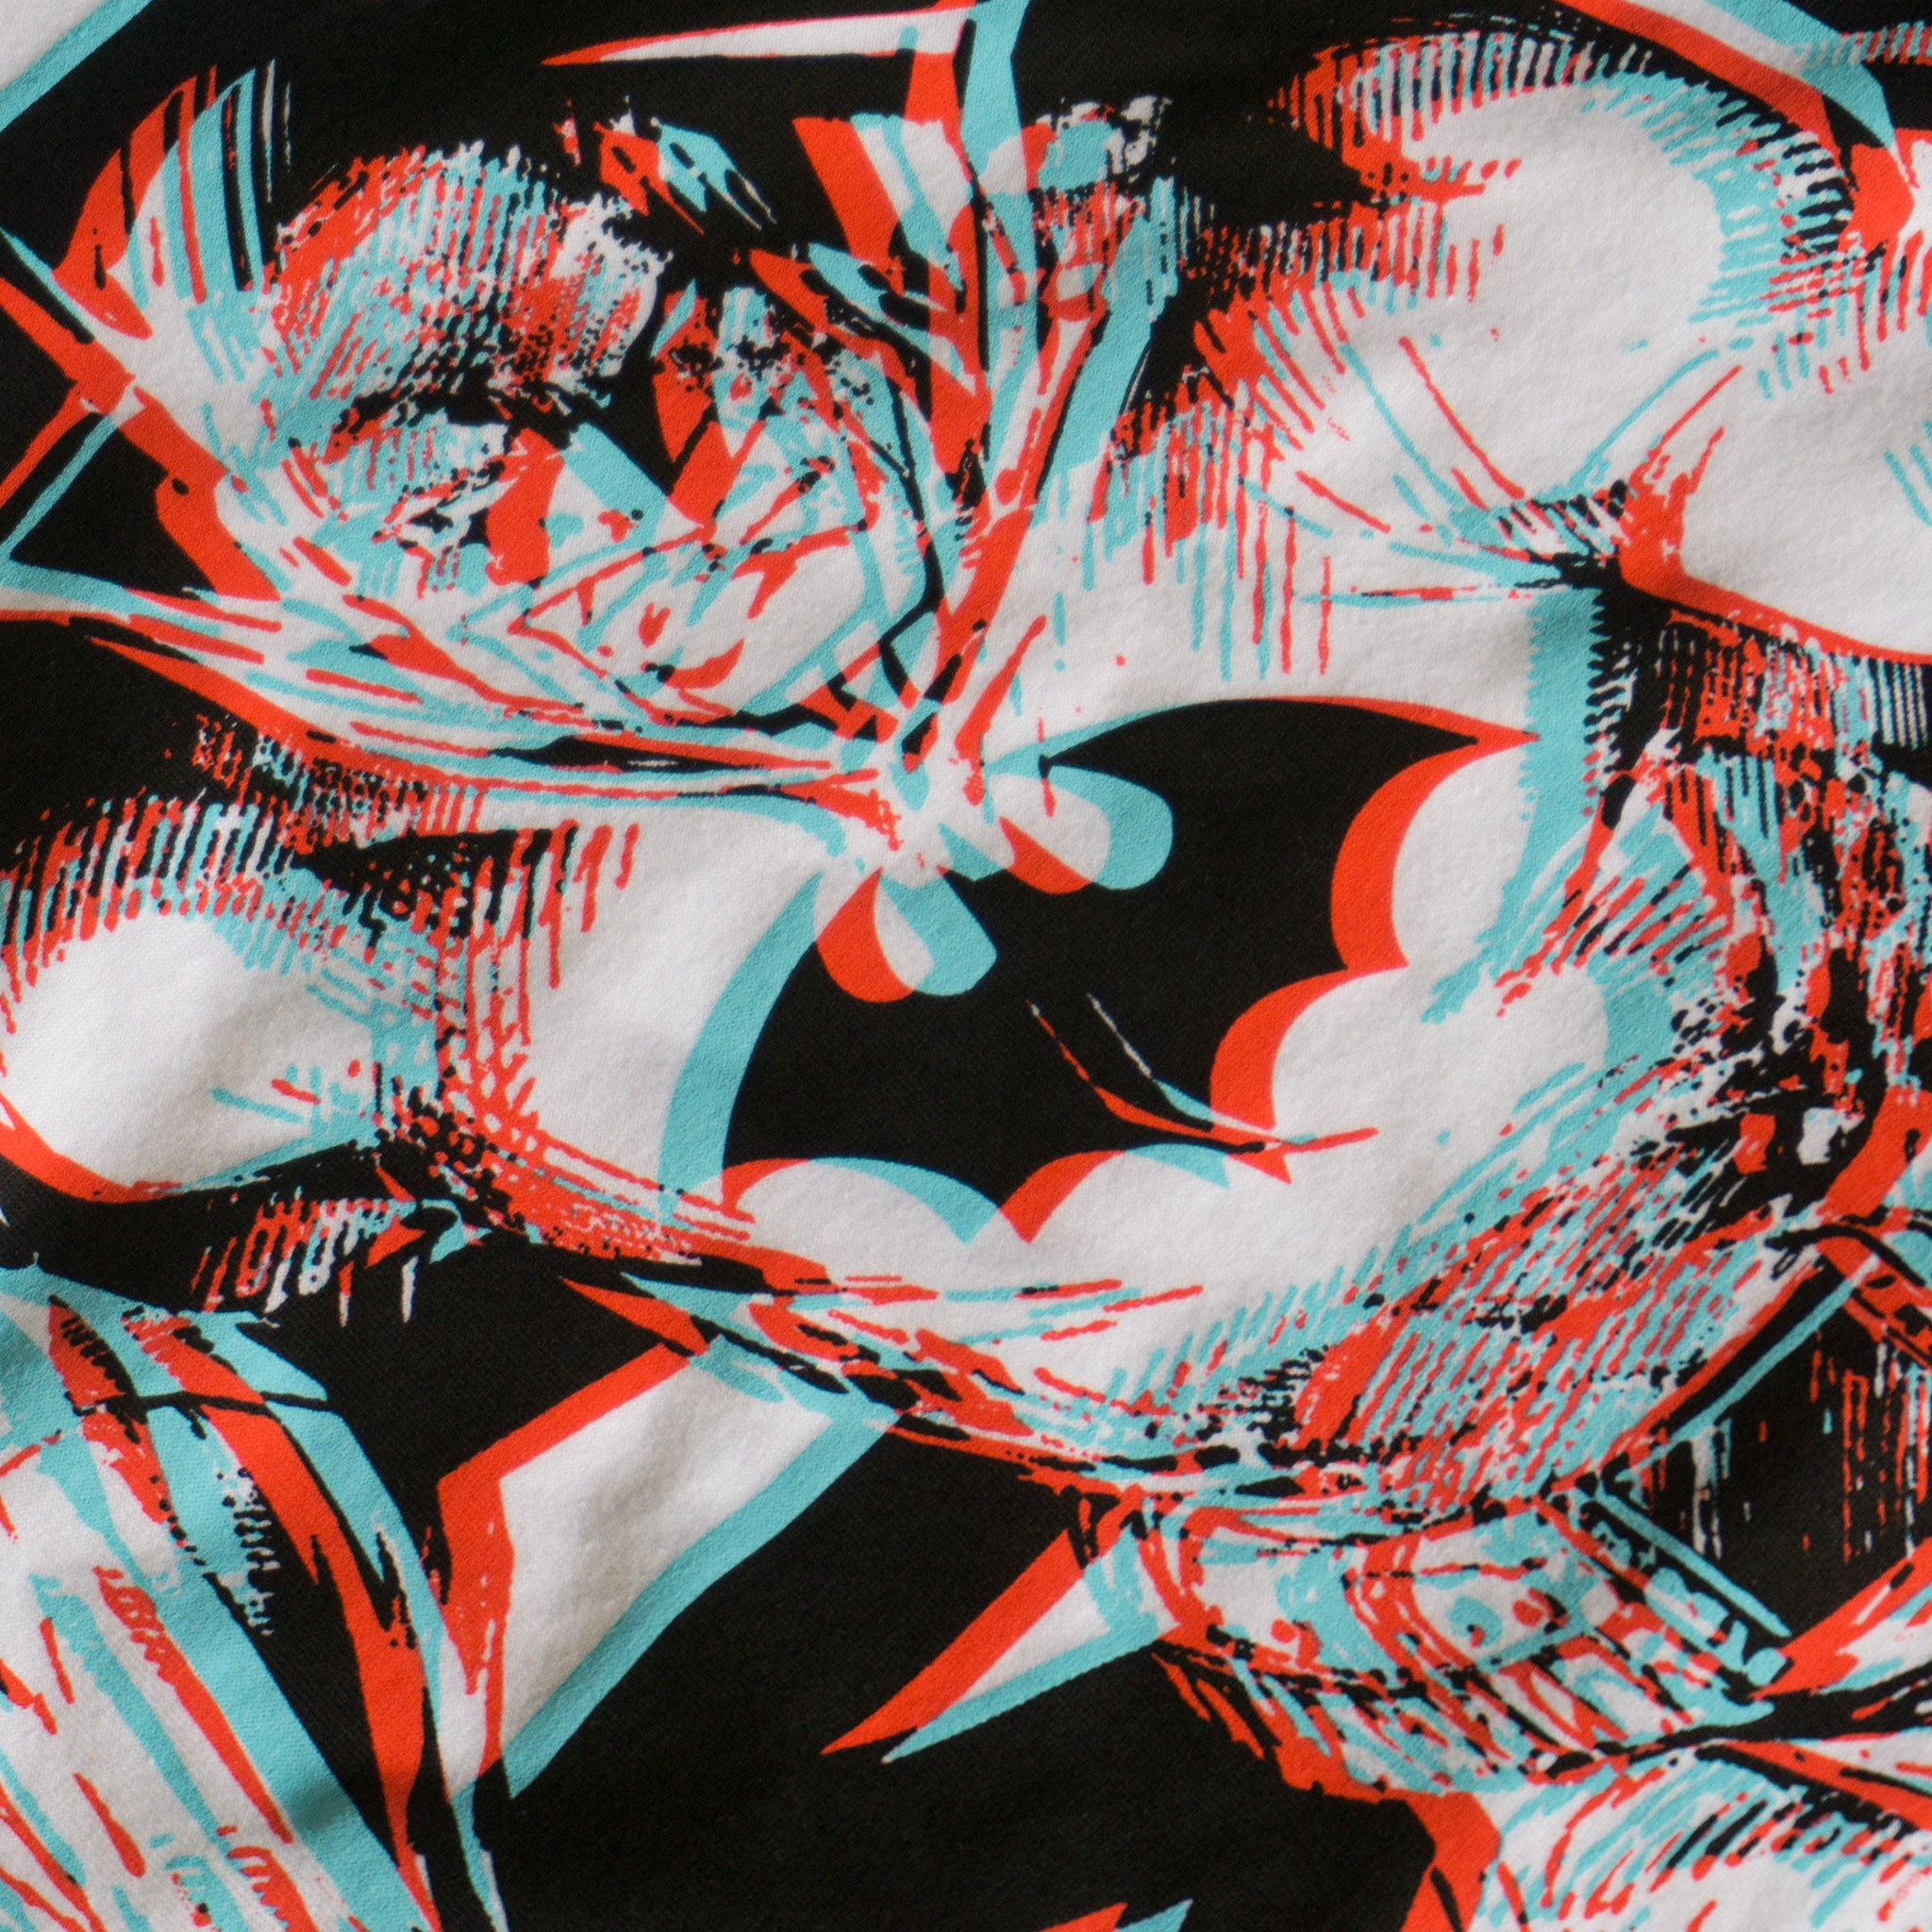 DARK KNIGHT ANAGLYPH NIÑO